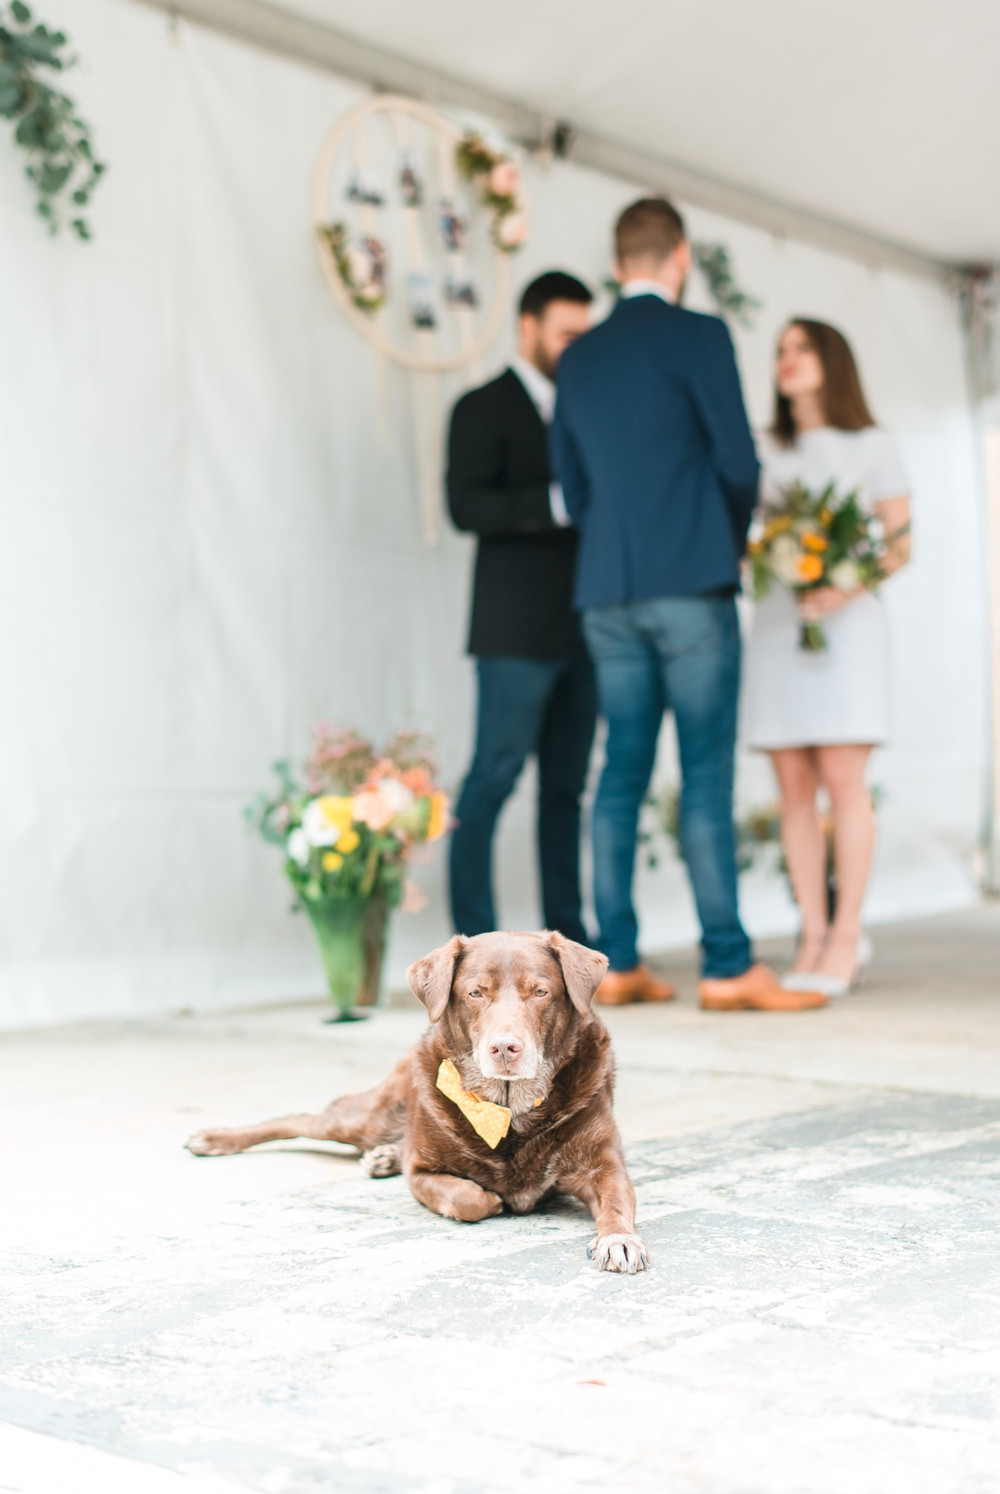 a puppy wearing a yellow bowtie in a wedding